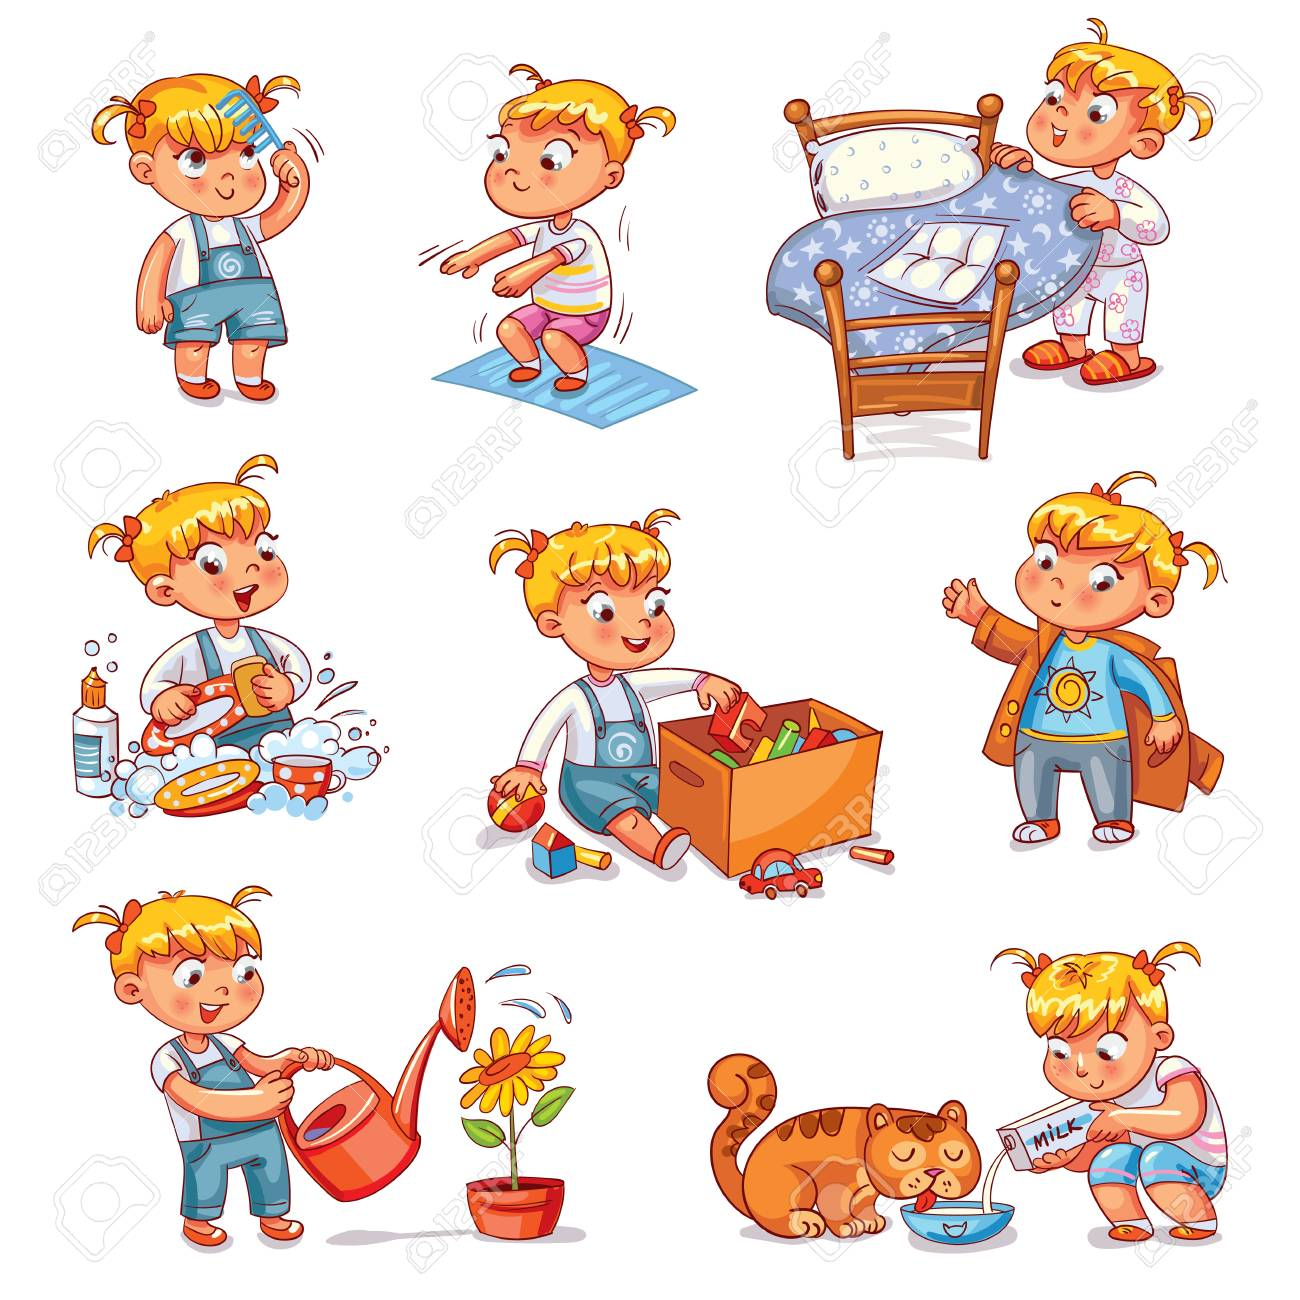 Daily routine. Child is combing his hair. Girl washes dishes. Kid is putting his toys in a box. Child makes bed. Girl himself clothes. Girl doing fitness exercise. Baby feeds a pet. - 91740770